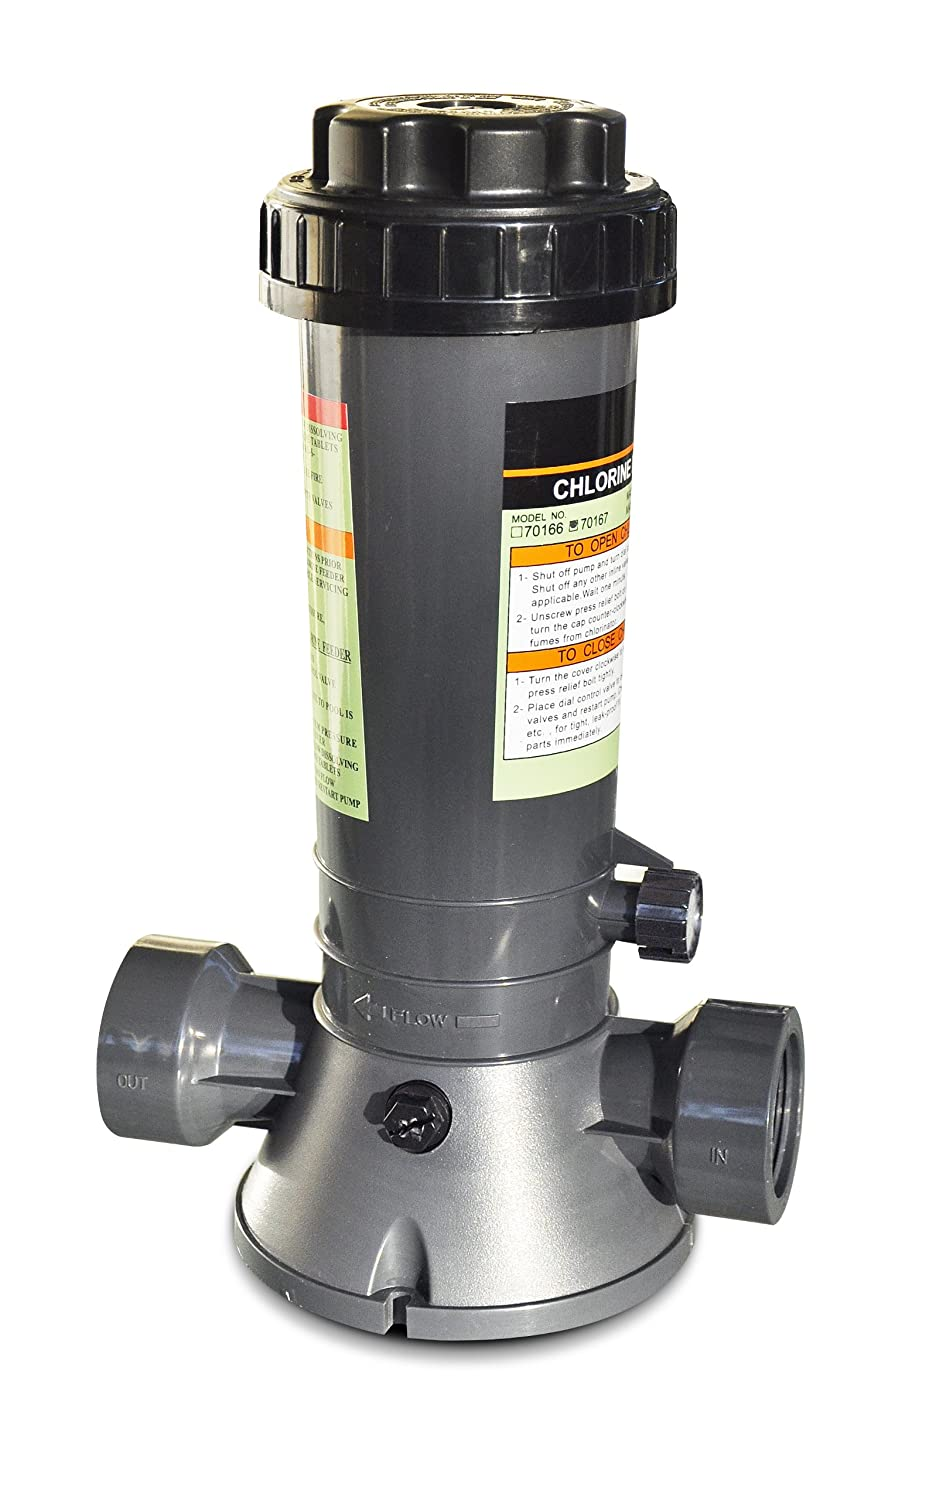 Solstice by International Leisure Products Hydro Tools 87501 Economy In-Line Above-Ground Pool Automatic Chlorine Feeder